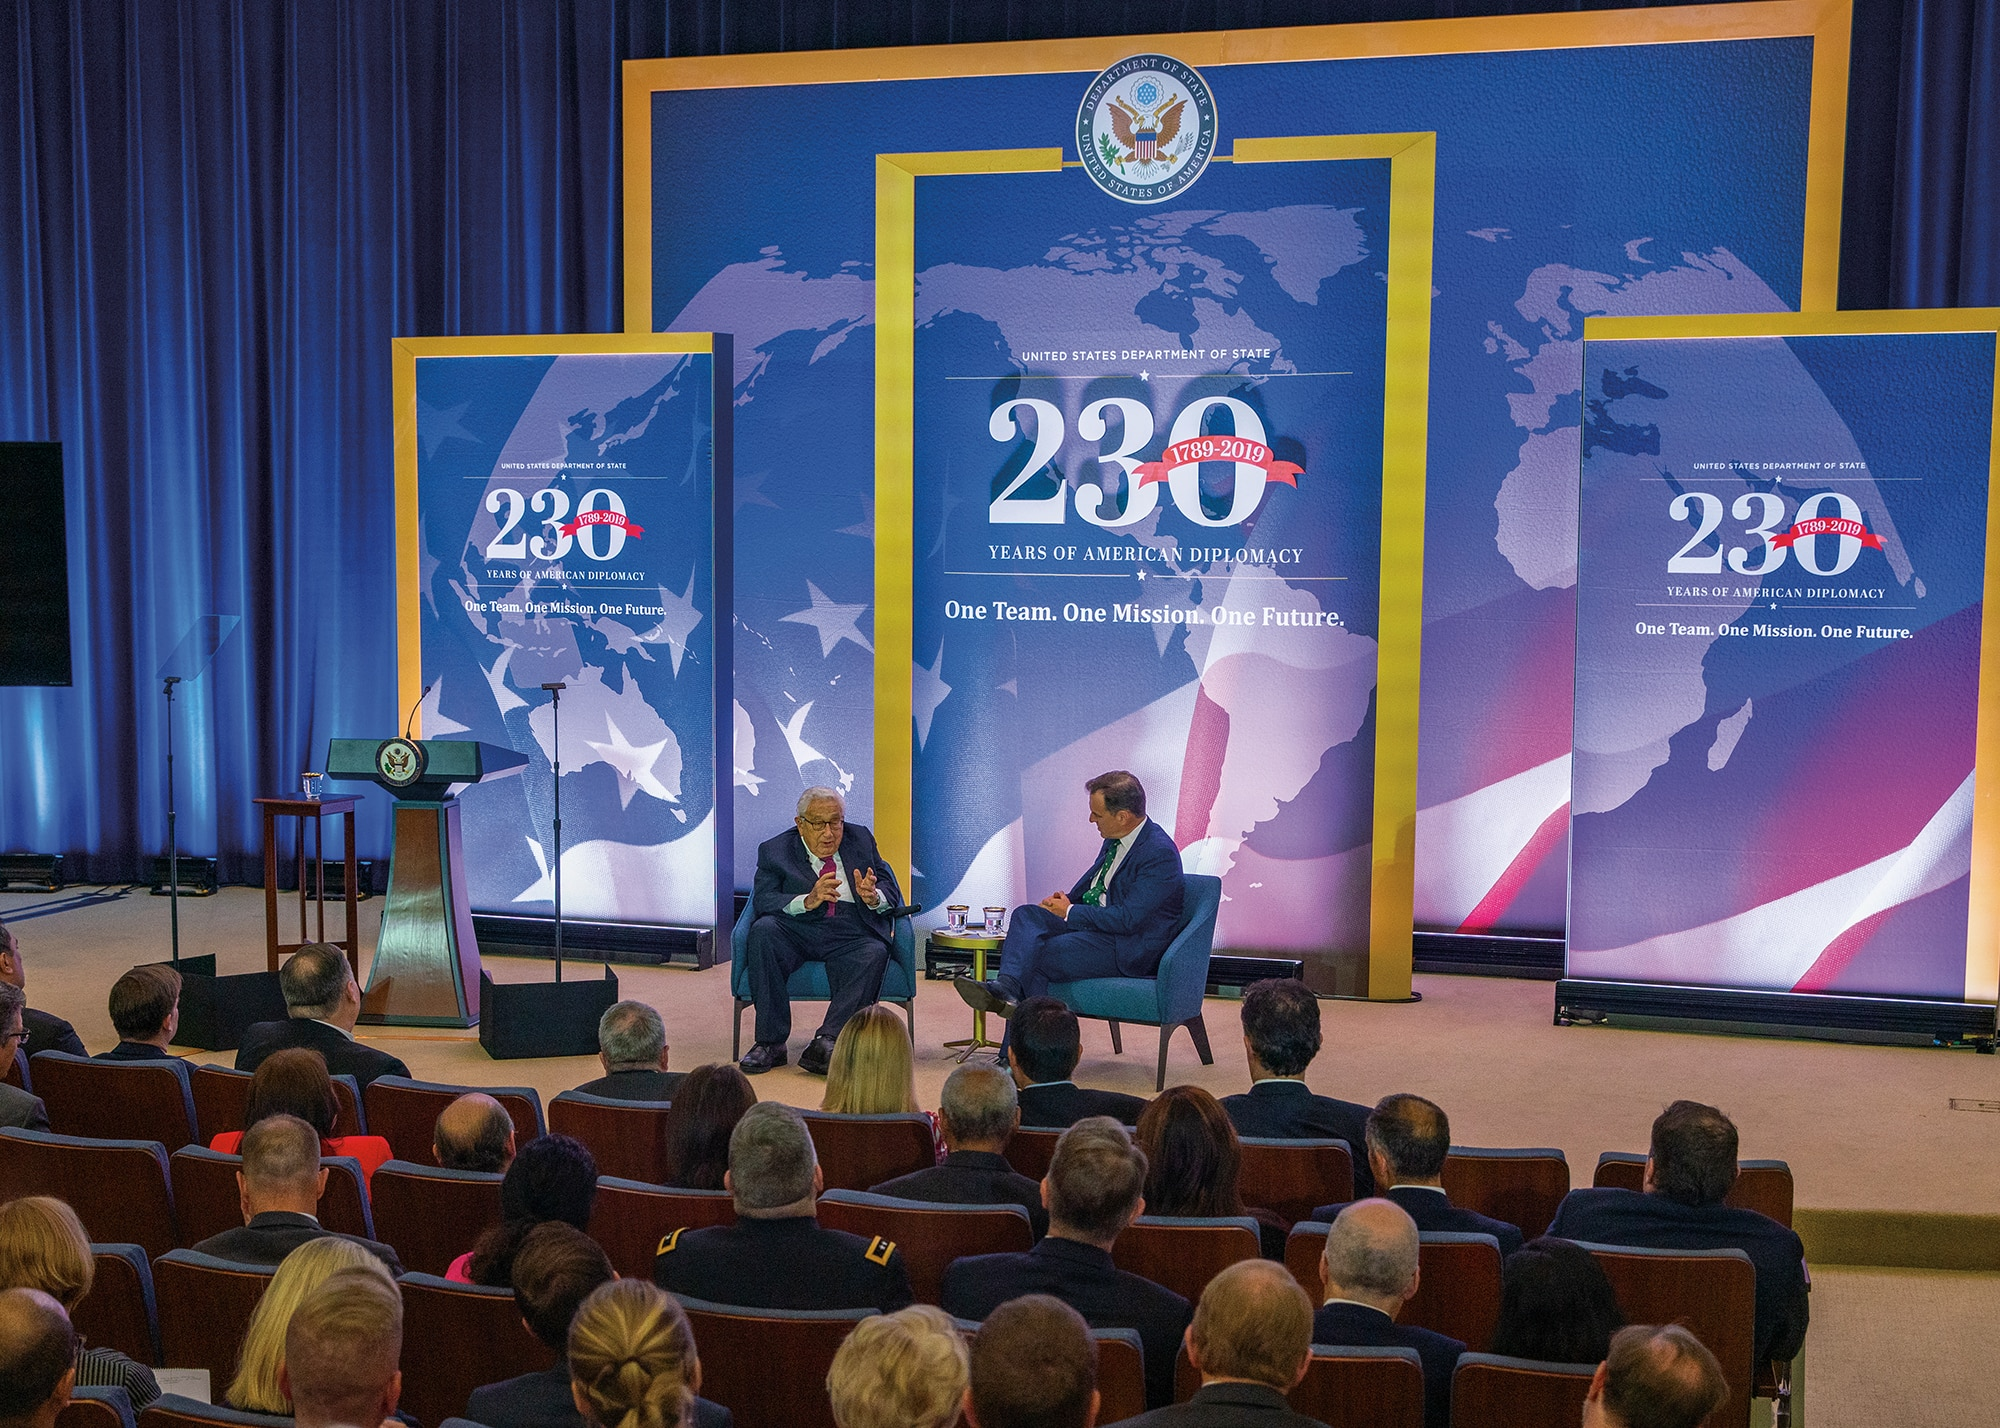 Photo showing former Secretary of State Dr. Henry Kissinger participating in a discussion with his biographer, Dr. Niall Ferguson, at the Department's 230th anniversary celebration in Washington, D.C., July 29, 2019. [Department of State]